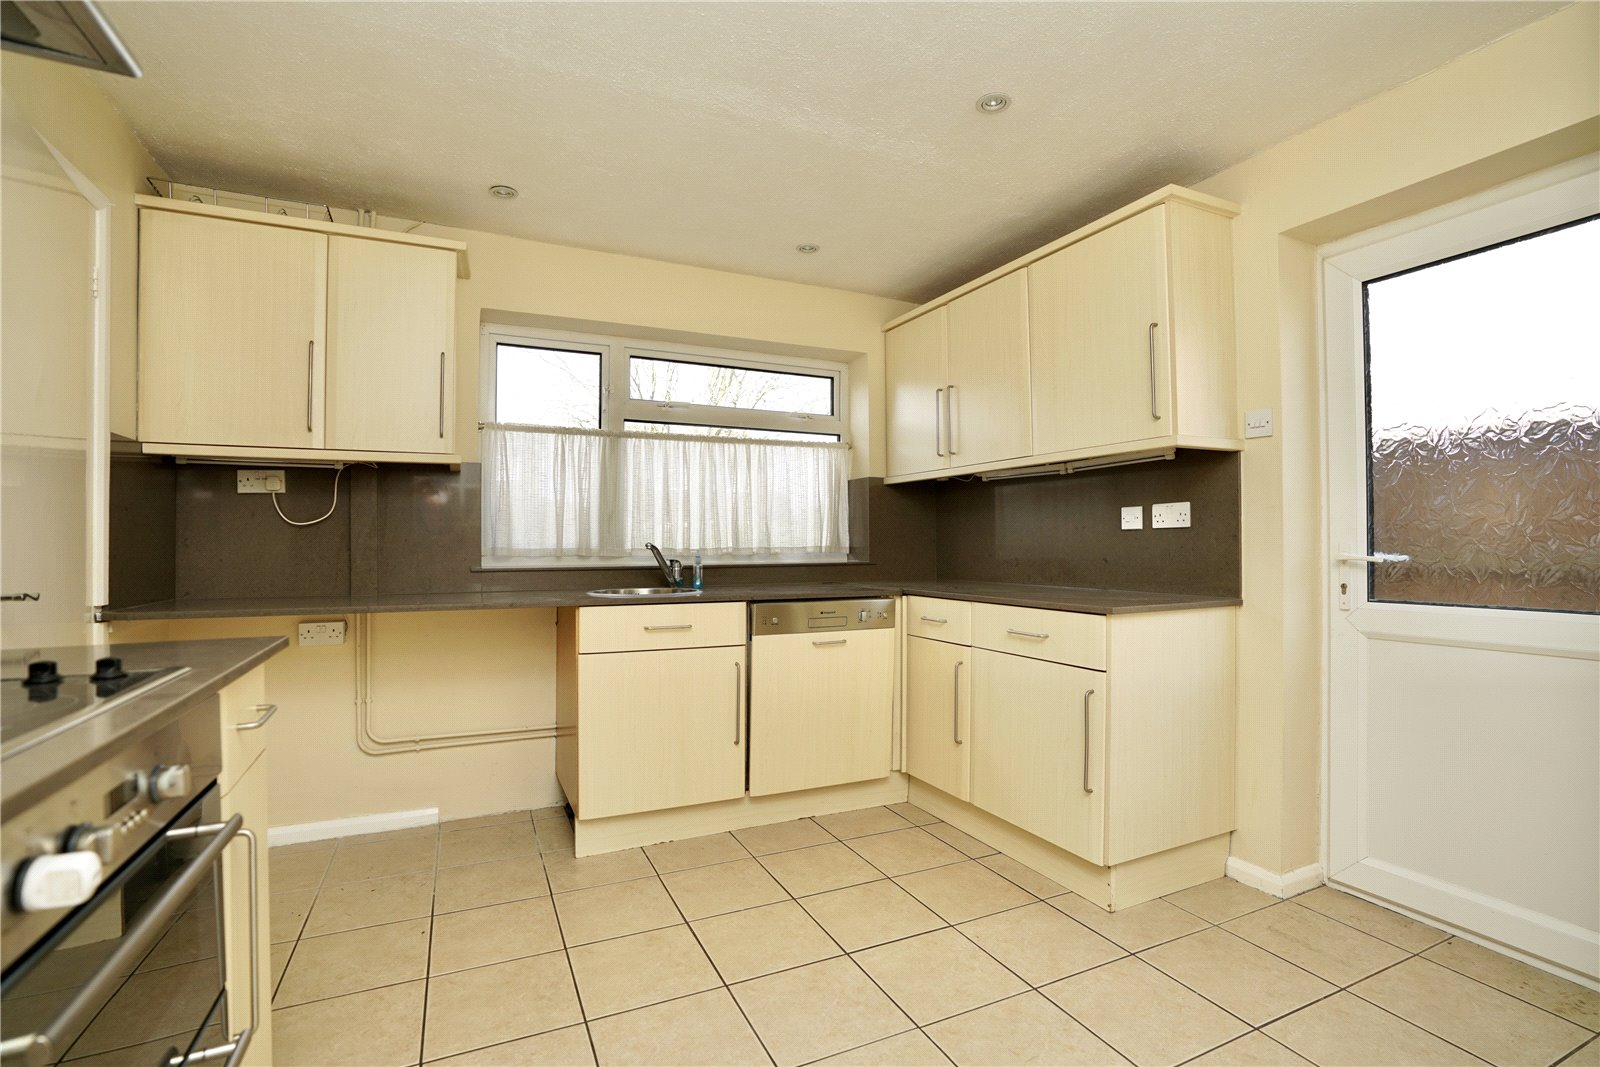 4 bed house for sale in Manor Close, Great Staughton 2